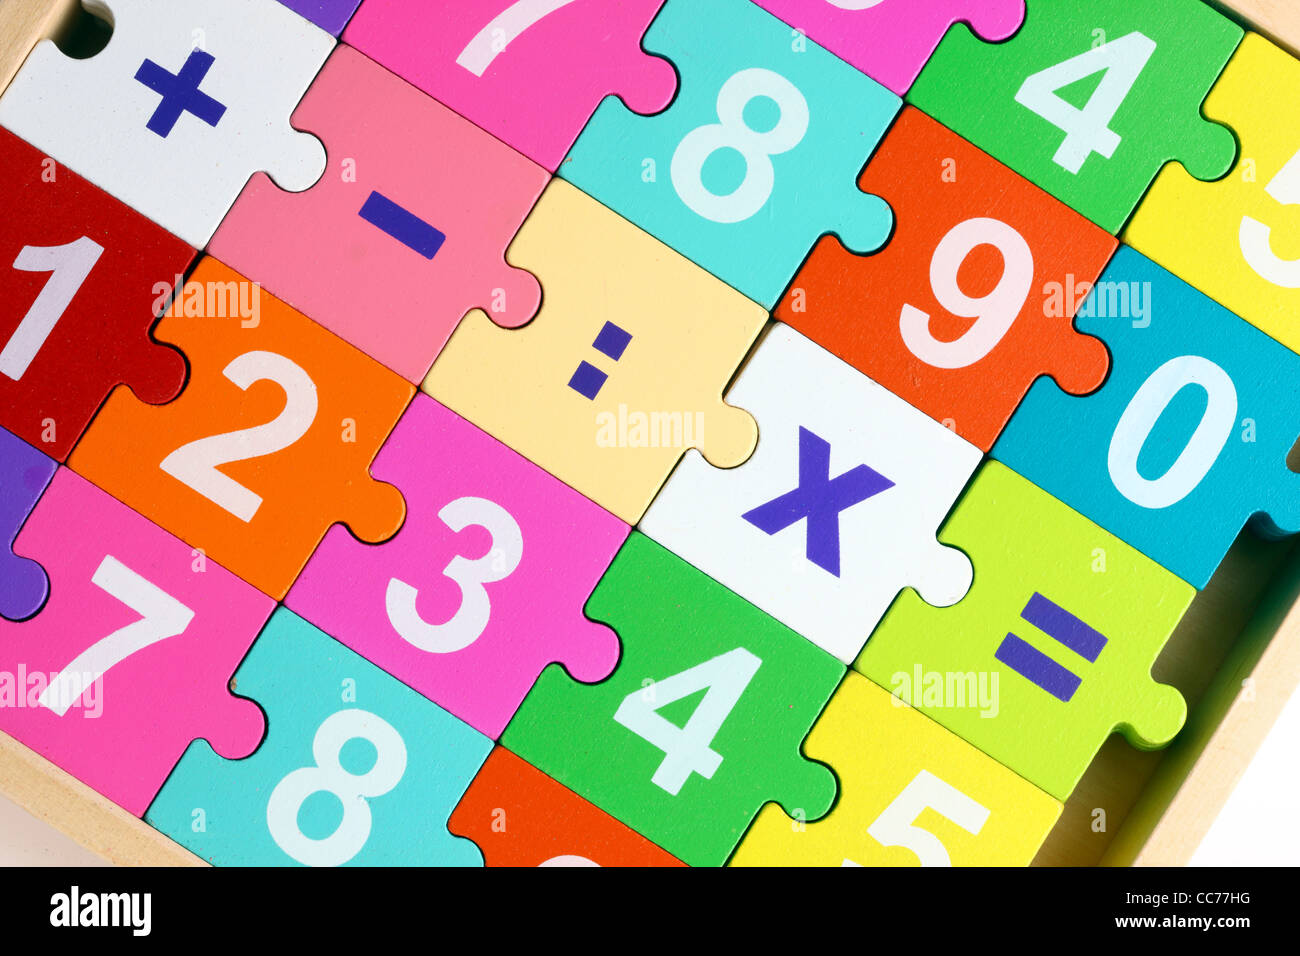 Mathematics puzzle, for kids. To learn mathematics while playing ...